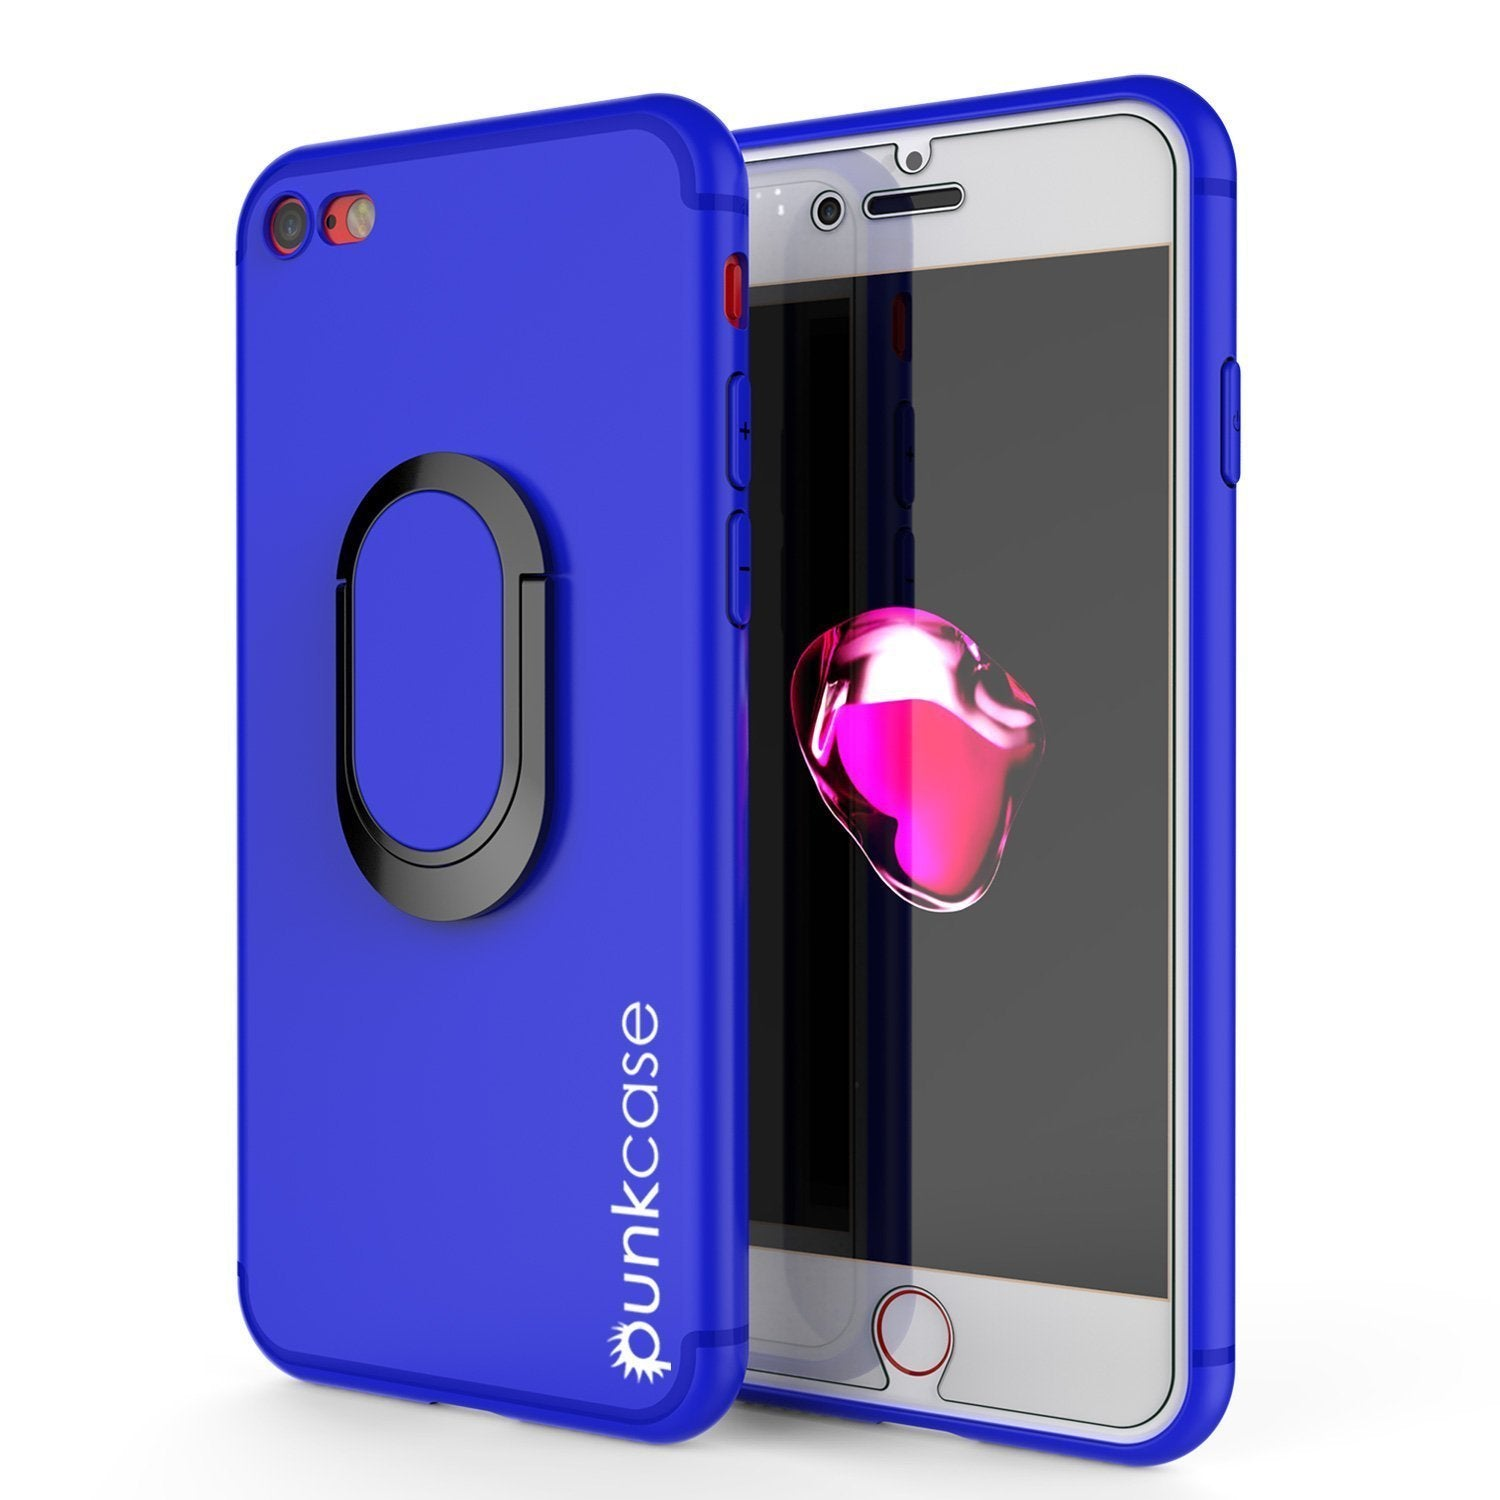 "iPhone SE (4.7"") Case, Punkcase Magnetix Protective TPU Cover W/ Kickstand, PLUS Tempered Glass Screen Protector [Blue]"